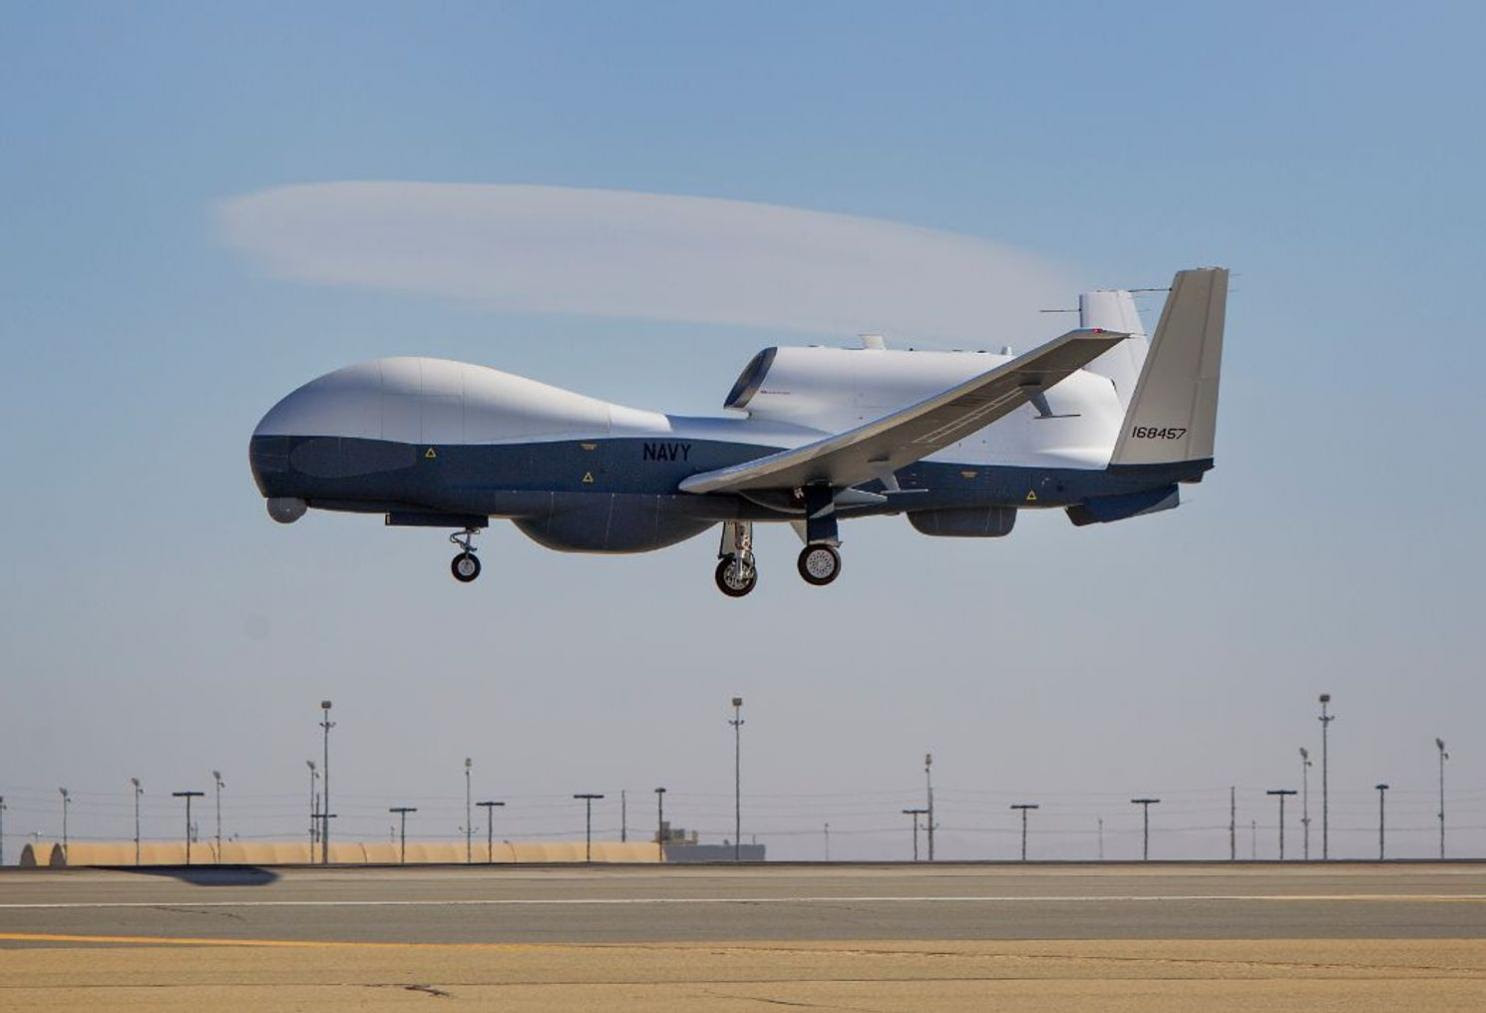 BAMS-D Drone - Wikimedia Commons